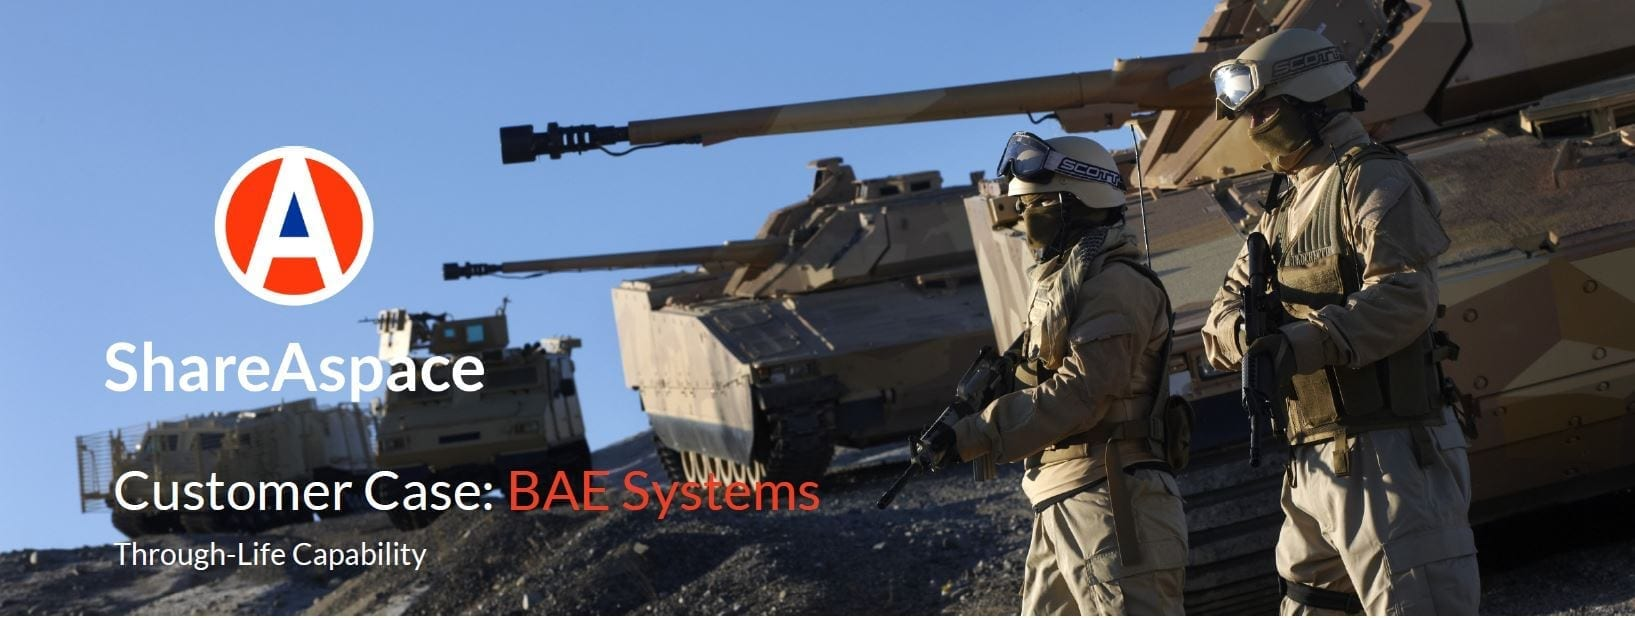 BAE Systems - Through Life Capability